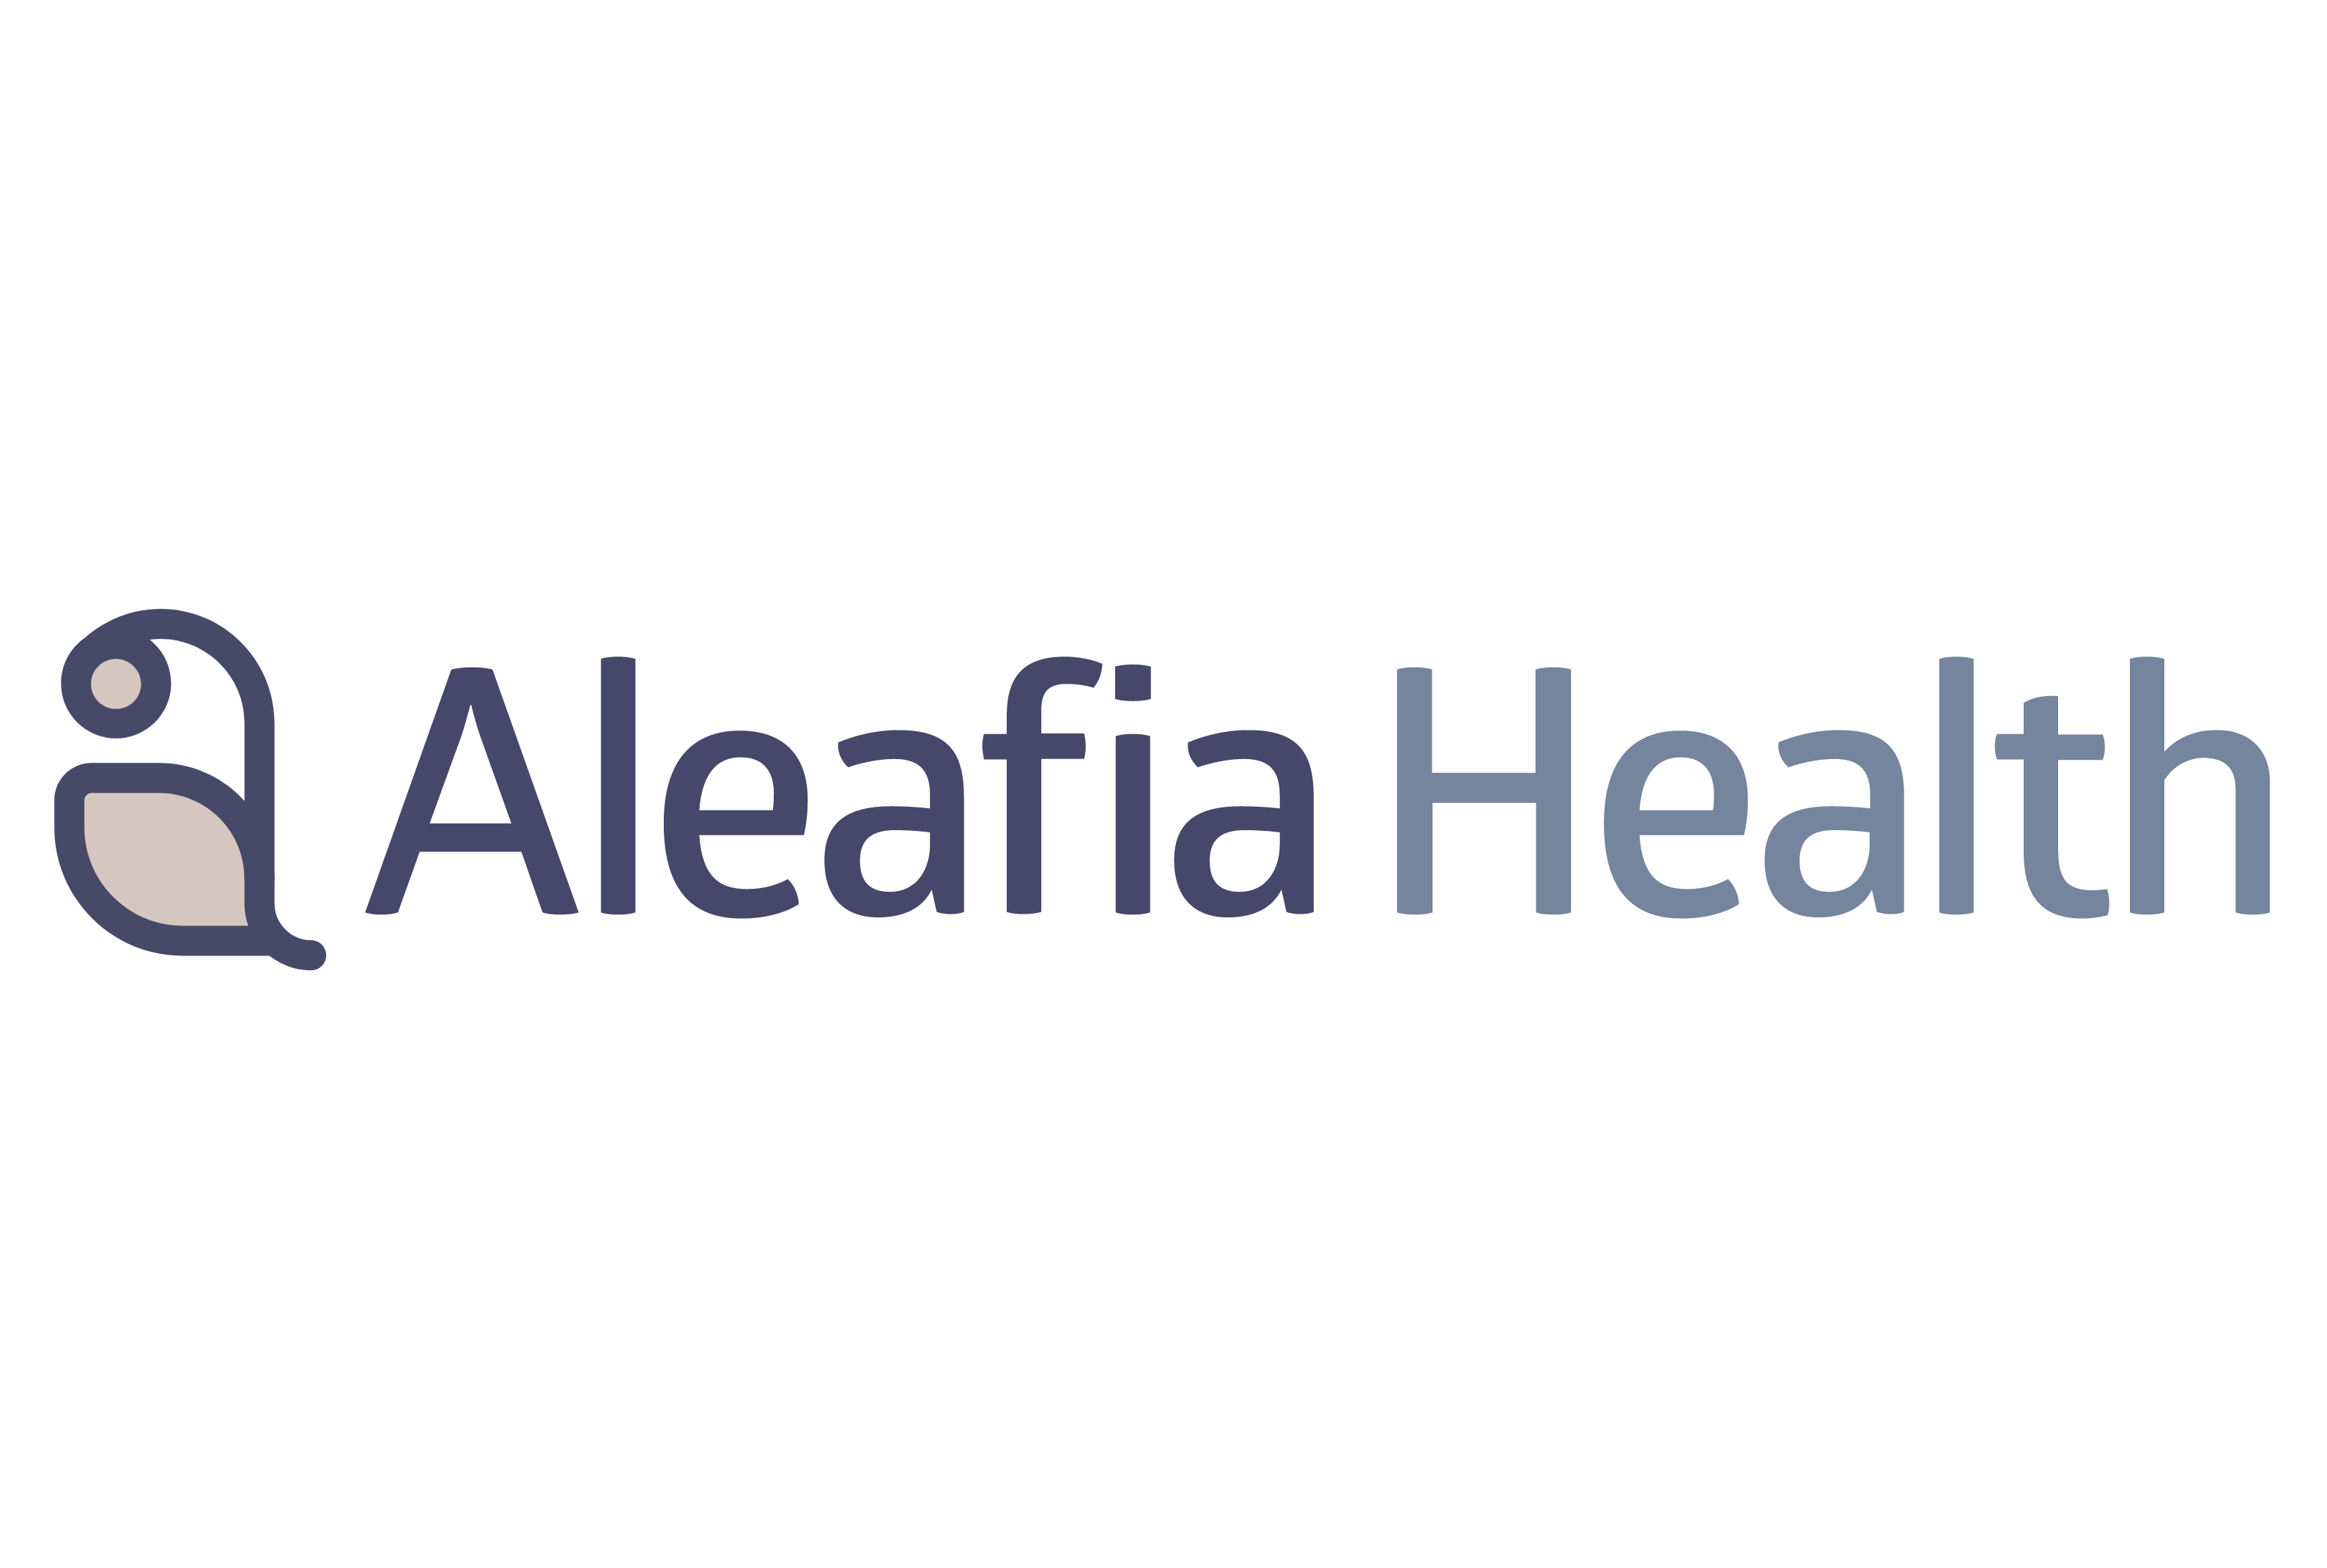 Aleafia Health Reports 2020 Year End Results, Record Quarterly Revenue